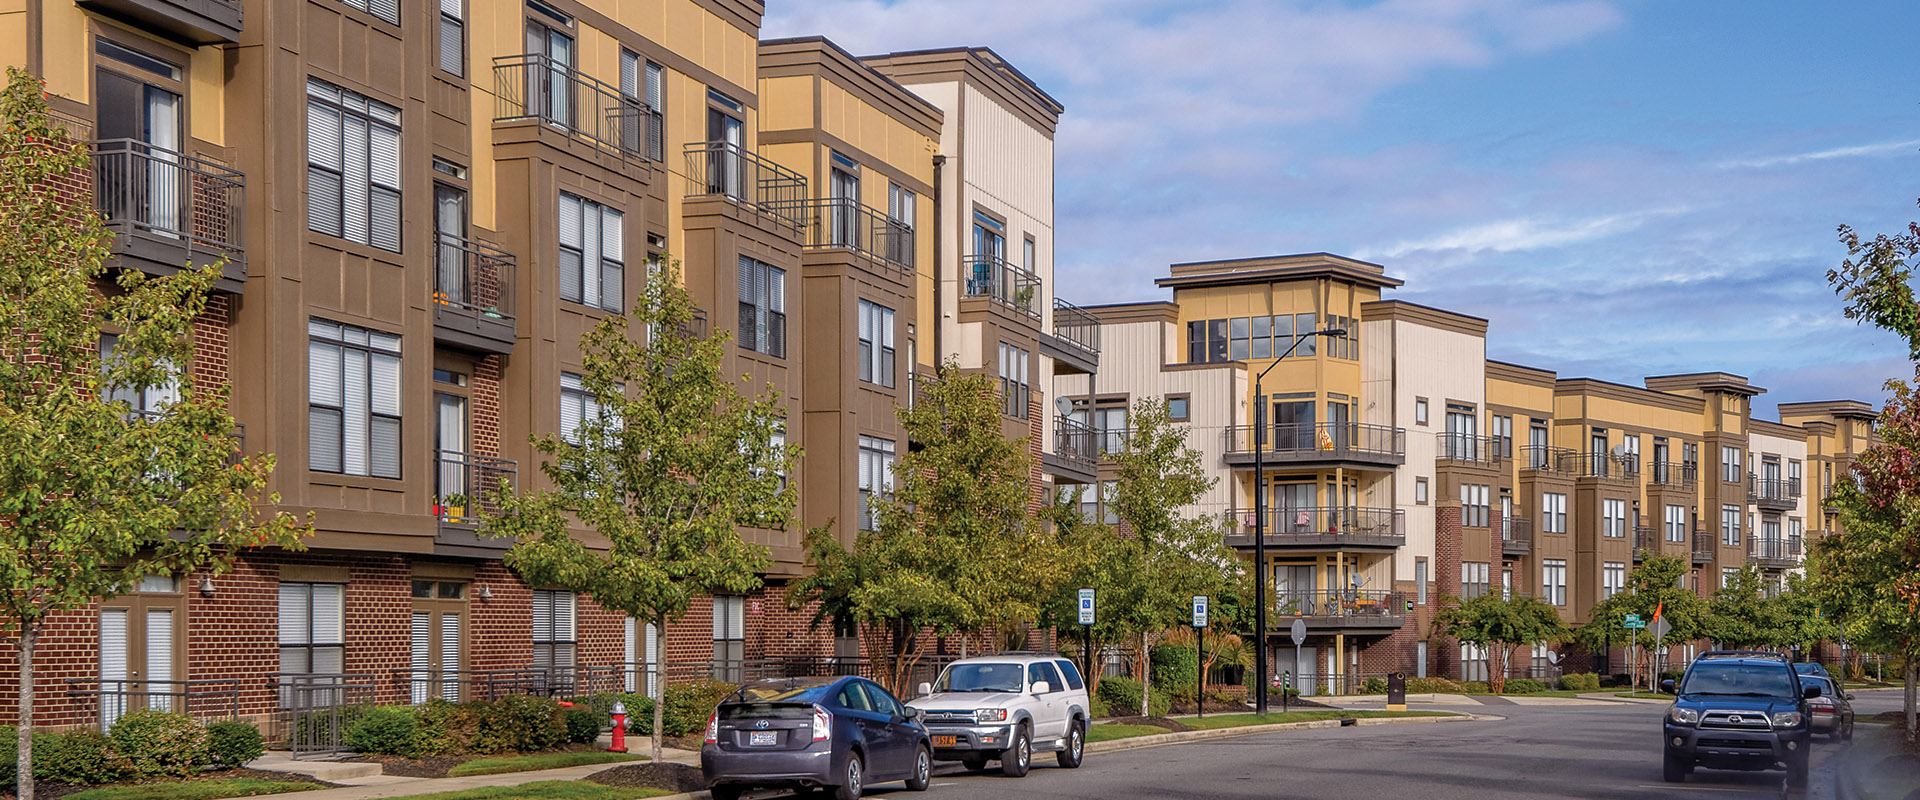 Apartments For In Oakland Ca Com